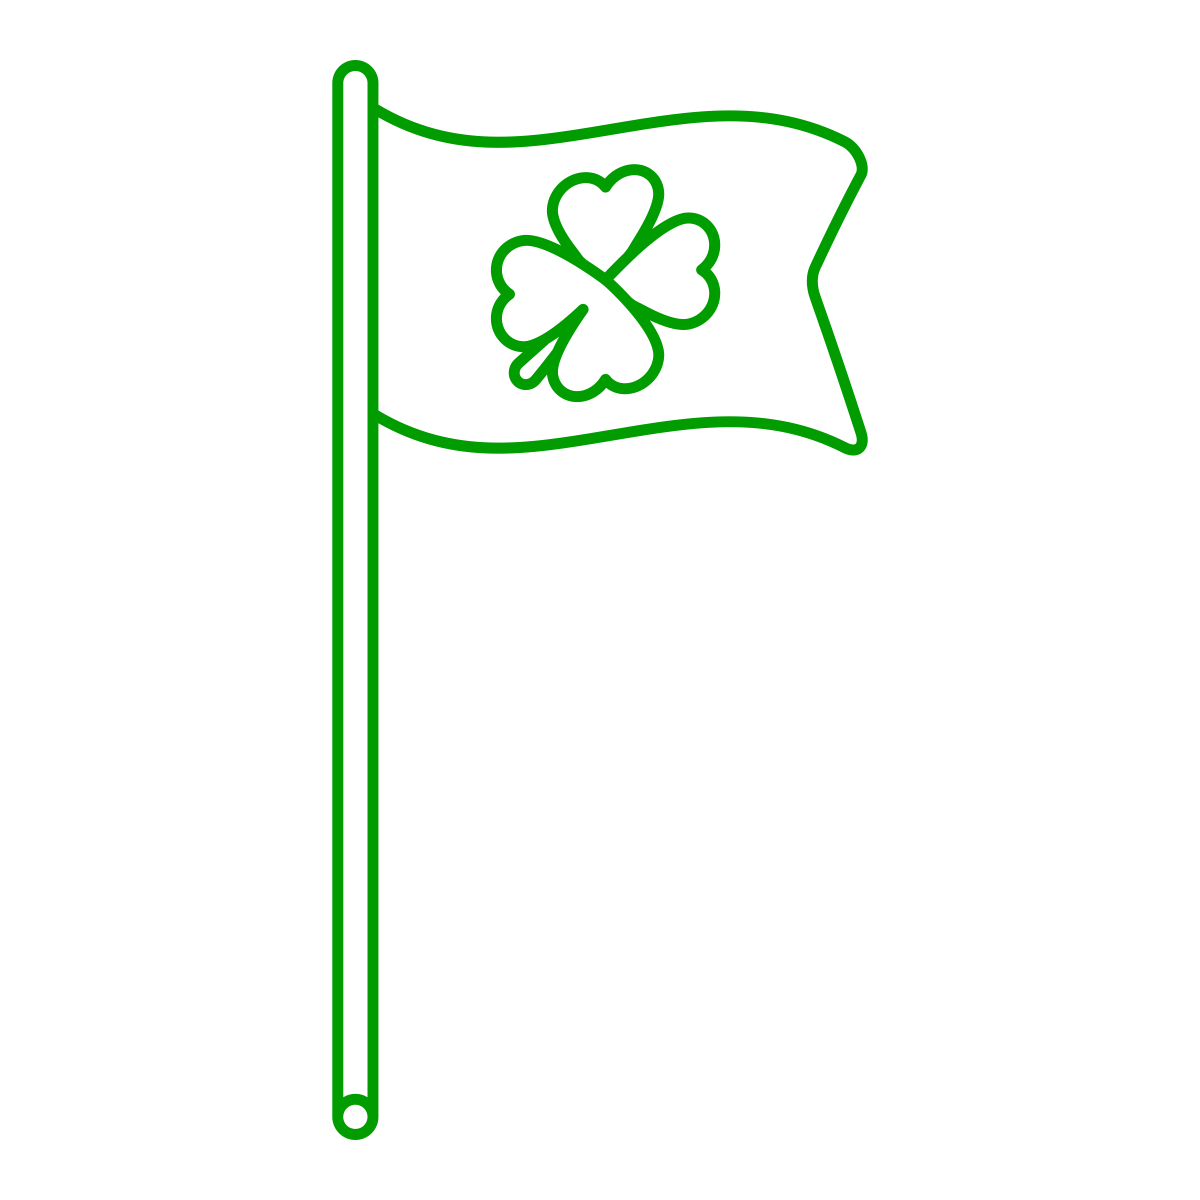 np_flag_1648342_008F00.png